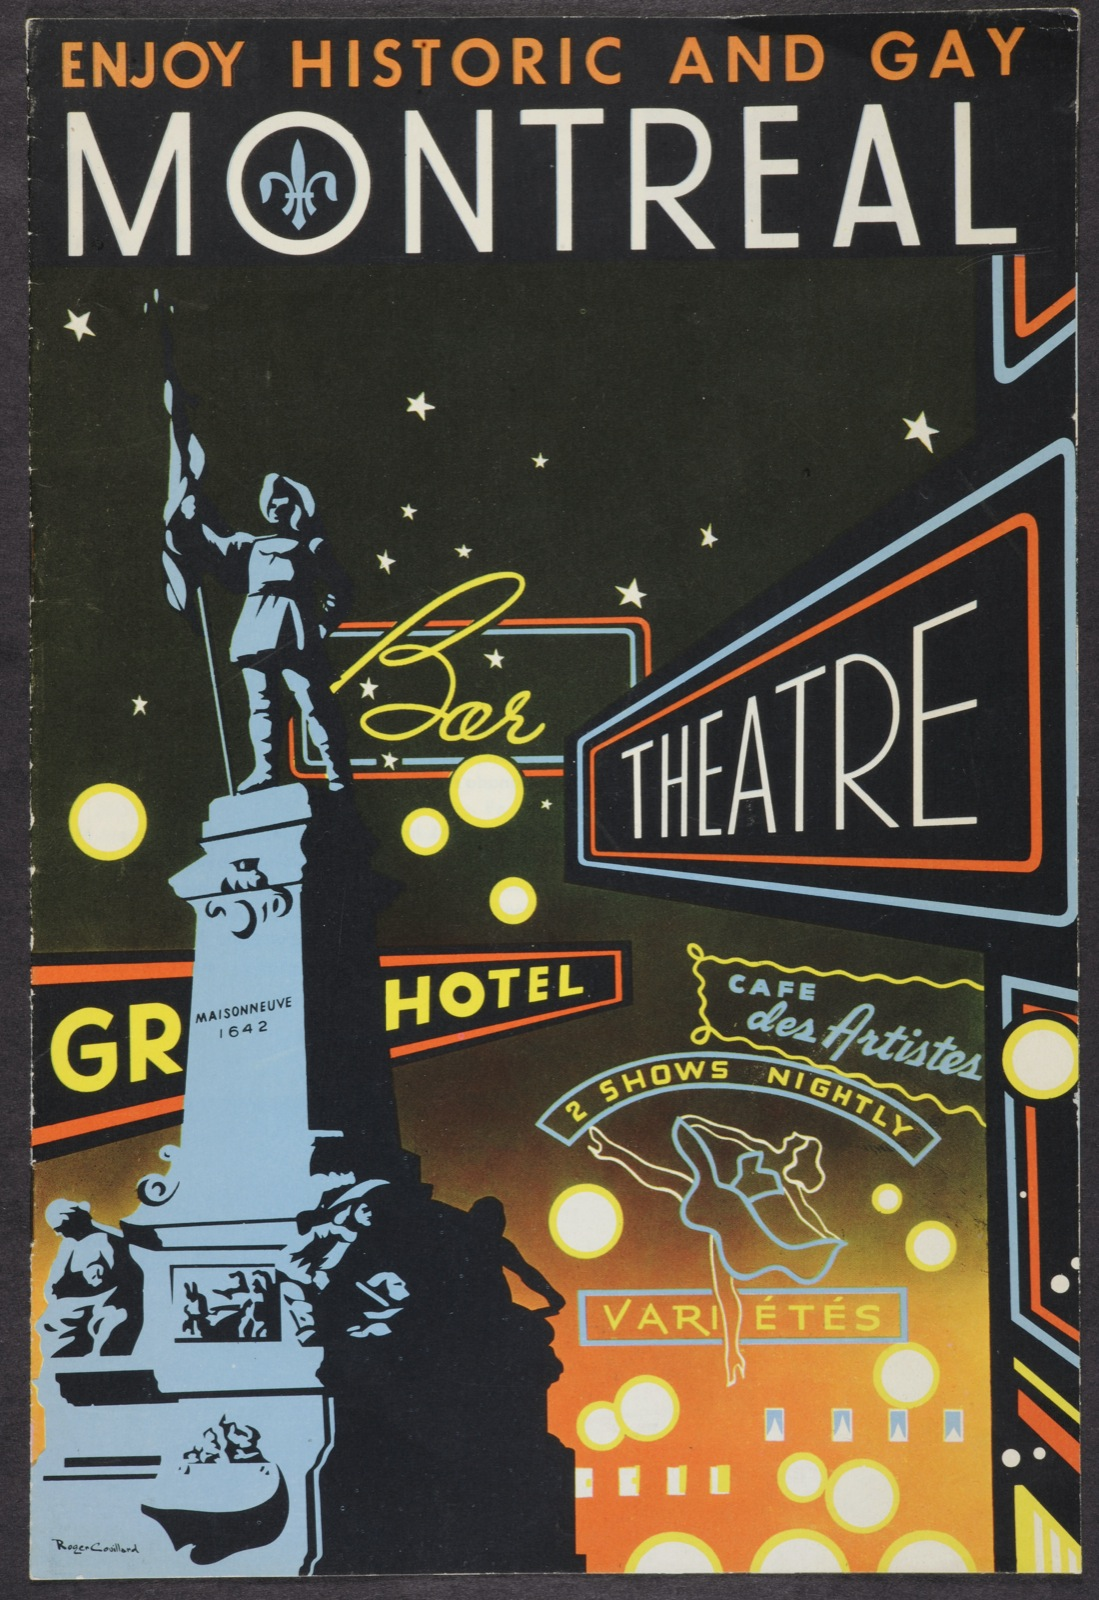 Front cover of 'Enjoy historic and gay Montreal' pamphlet published by the Montreal Tourist & Convention Bureau in the 1950s.